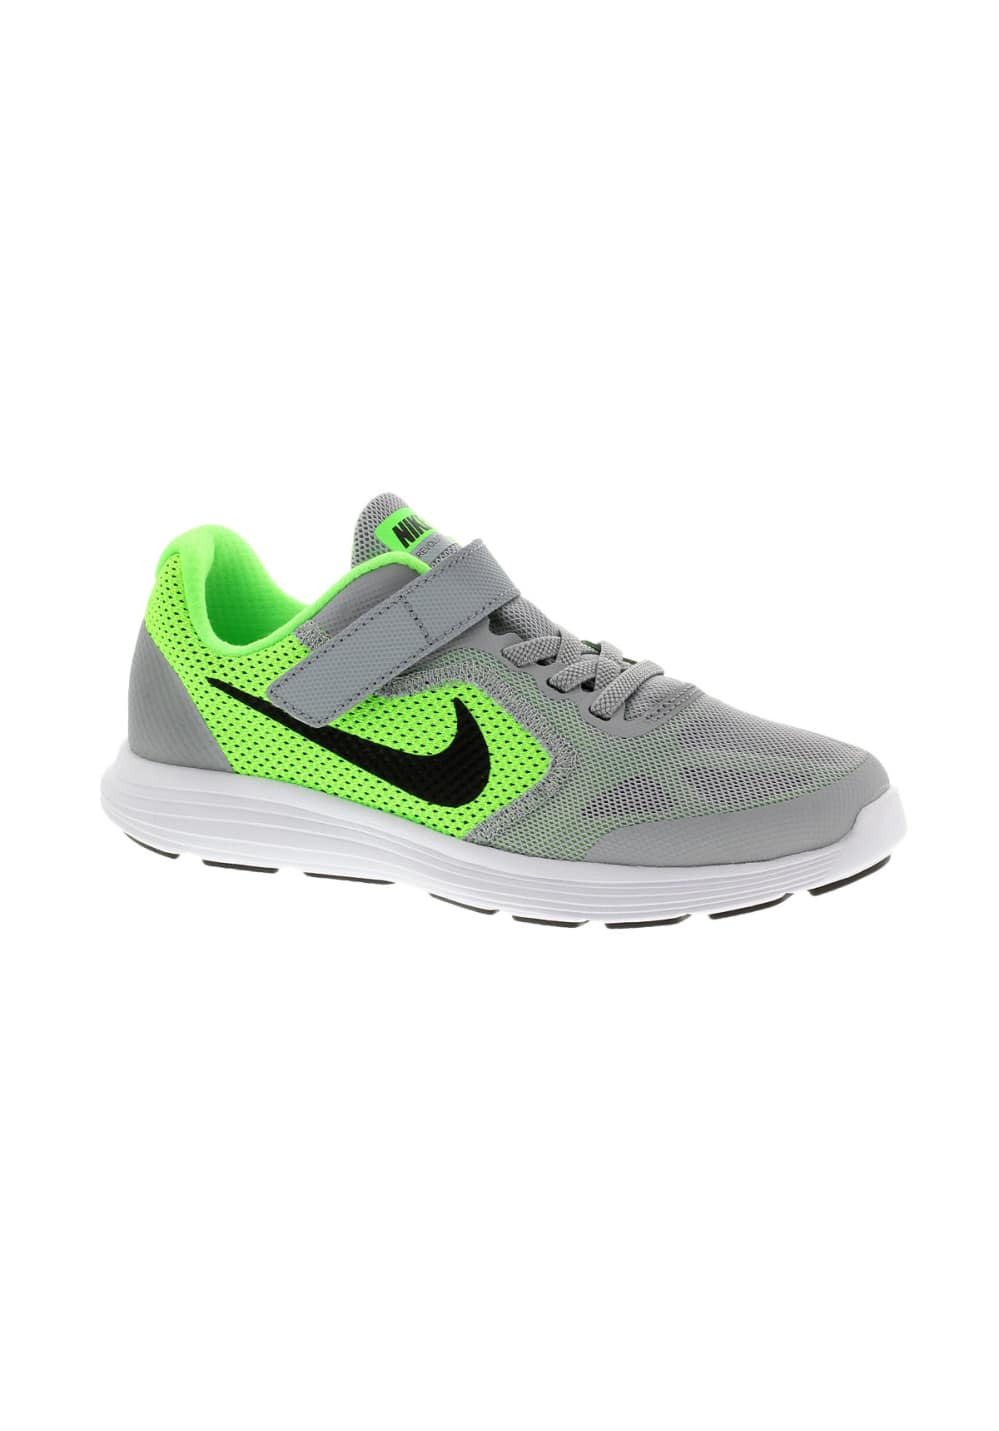 newest 8ed7d 8977b Nike Revolution 3 PS - Fitness shoes - Grey